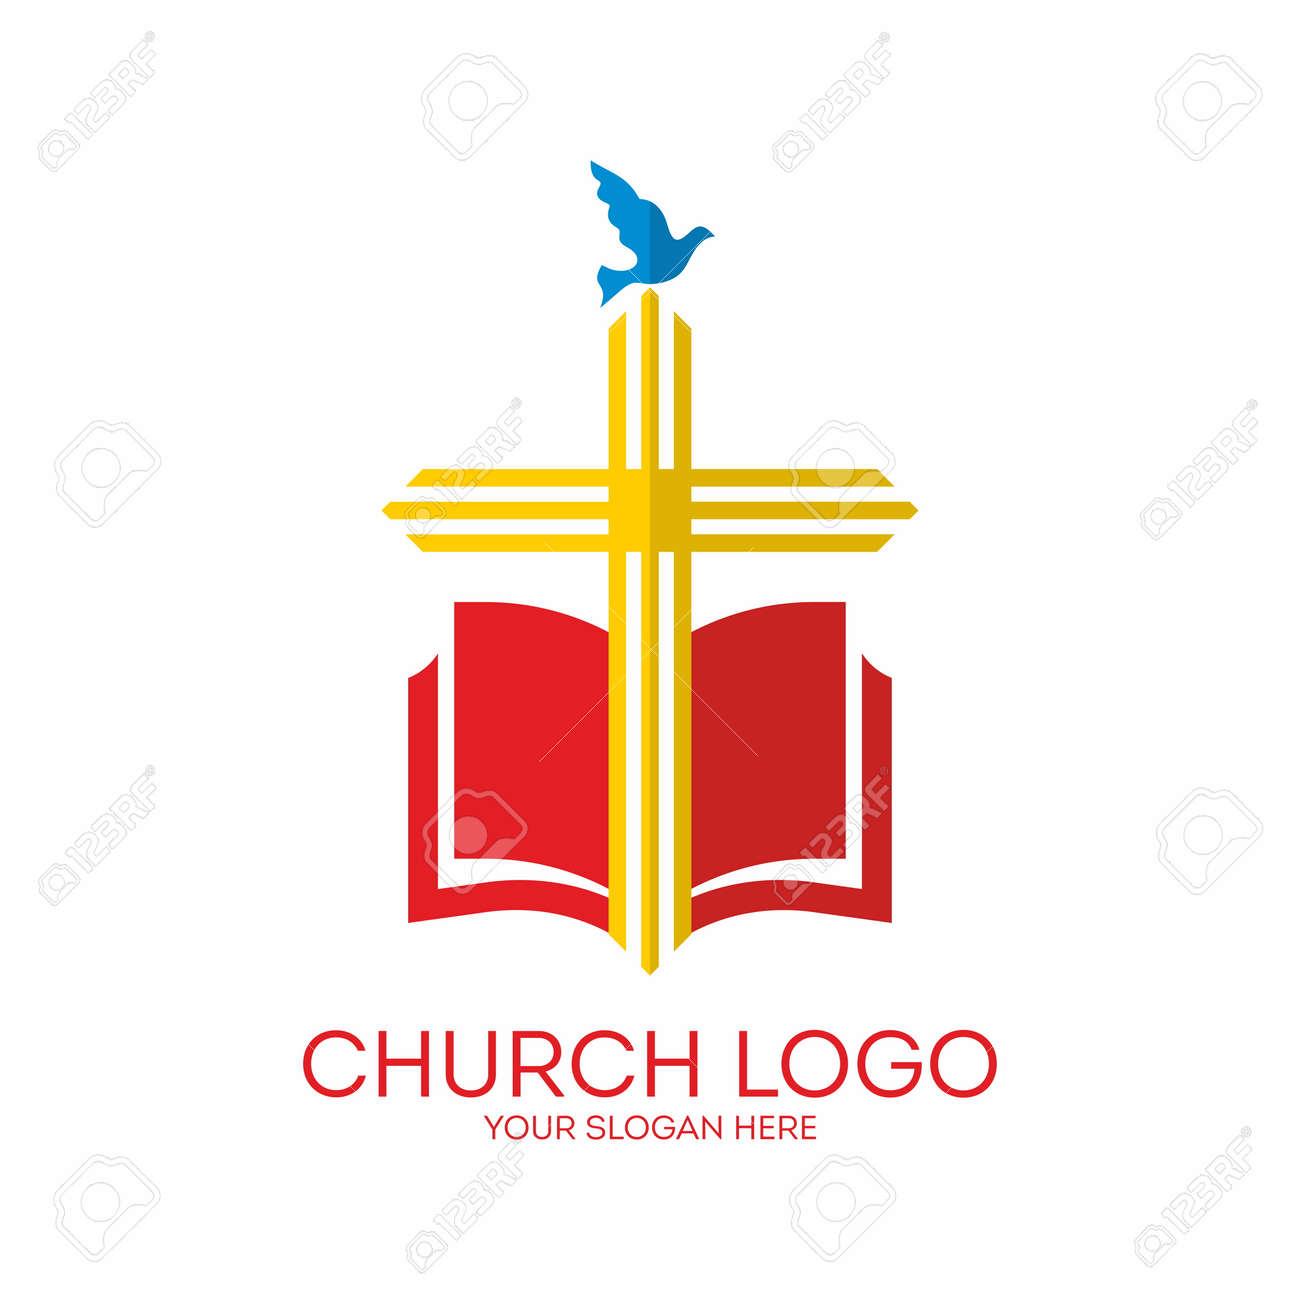 Church logo cross bible dove icon red yellow blue royalty church logo cross bible dove icon red yellow blue altavistaventures Images